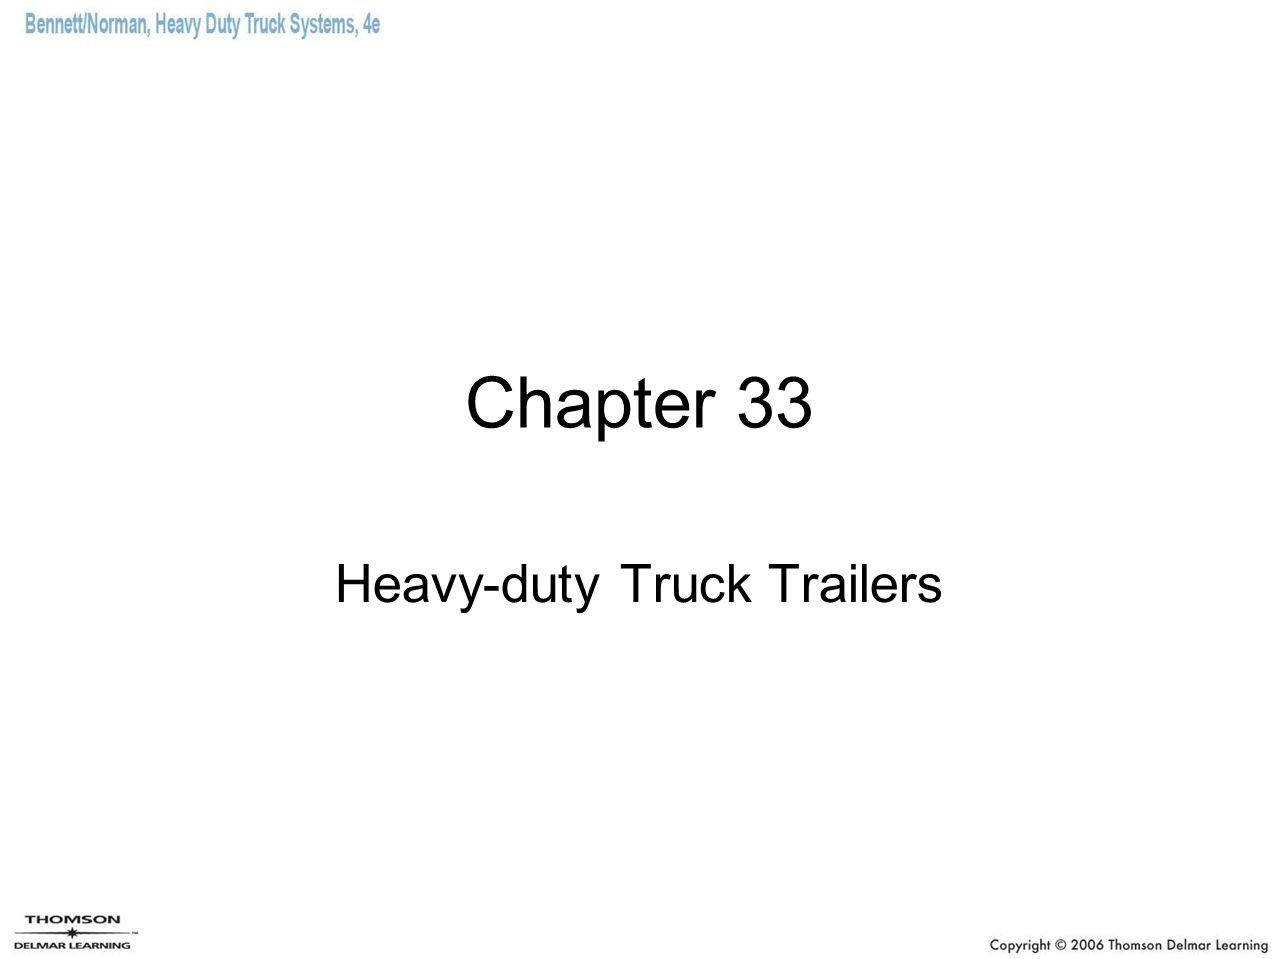 Chapter 33 Heavy-duty Truck Trailers